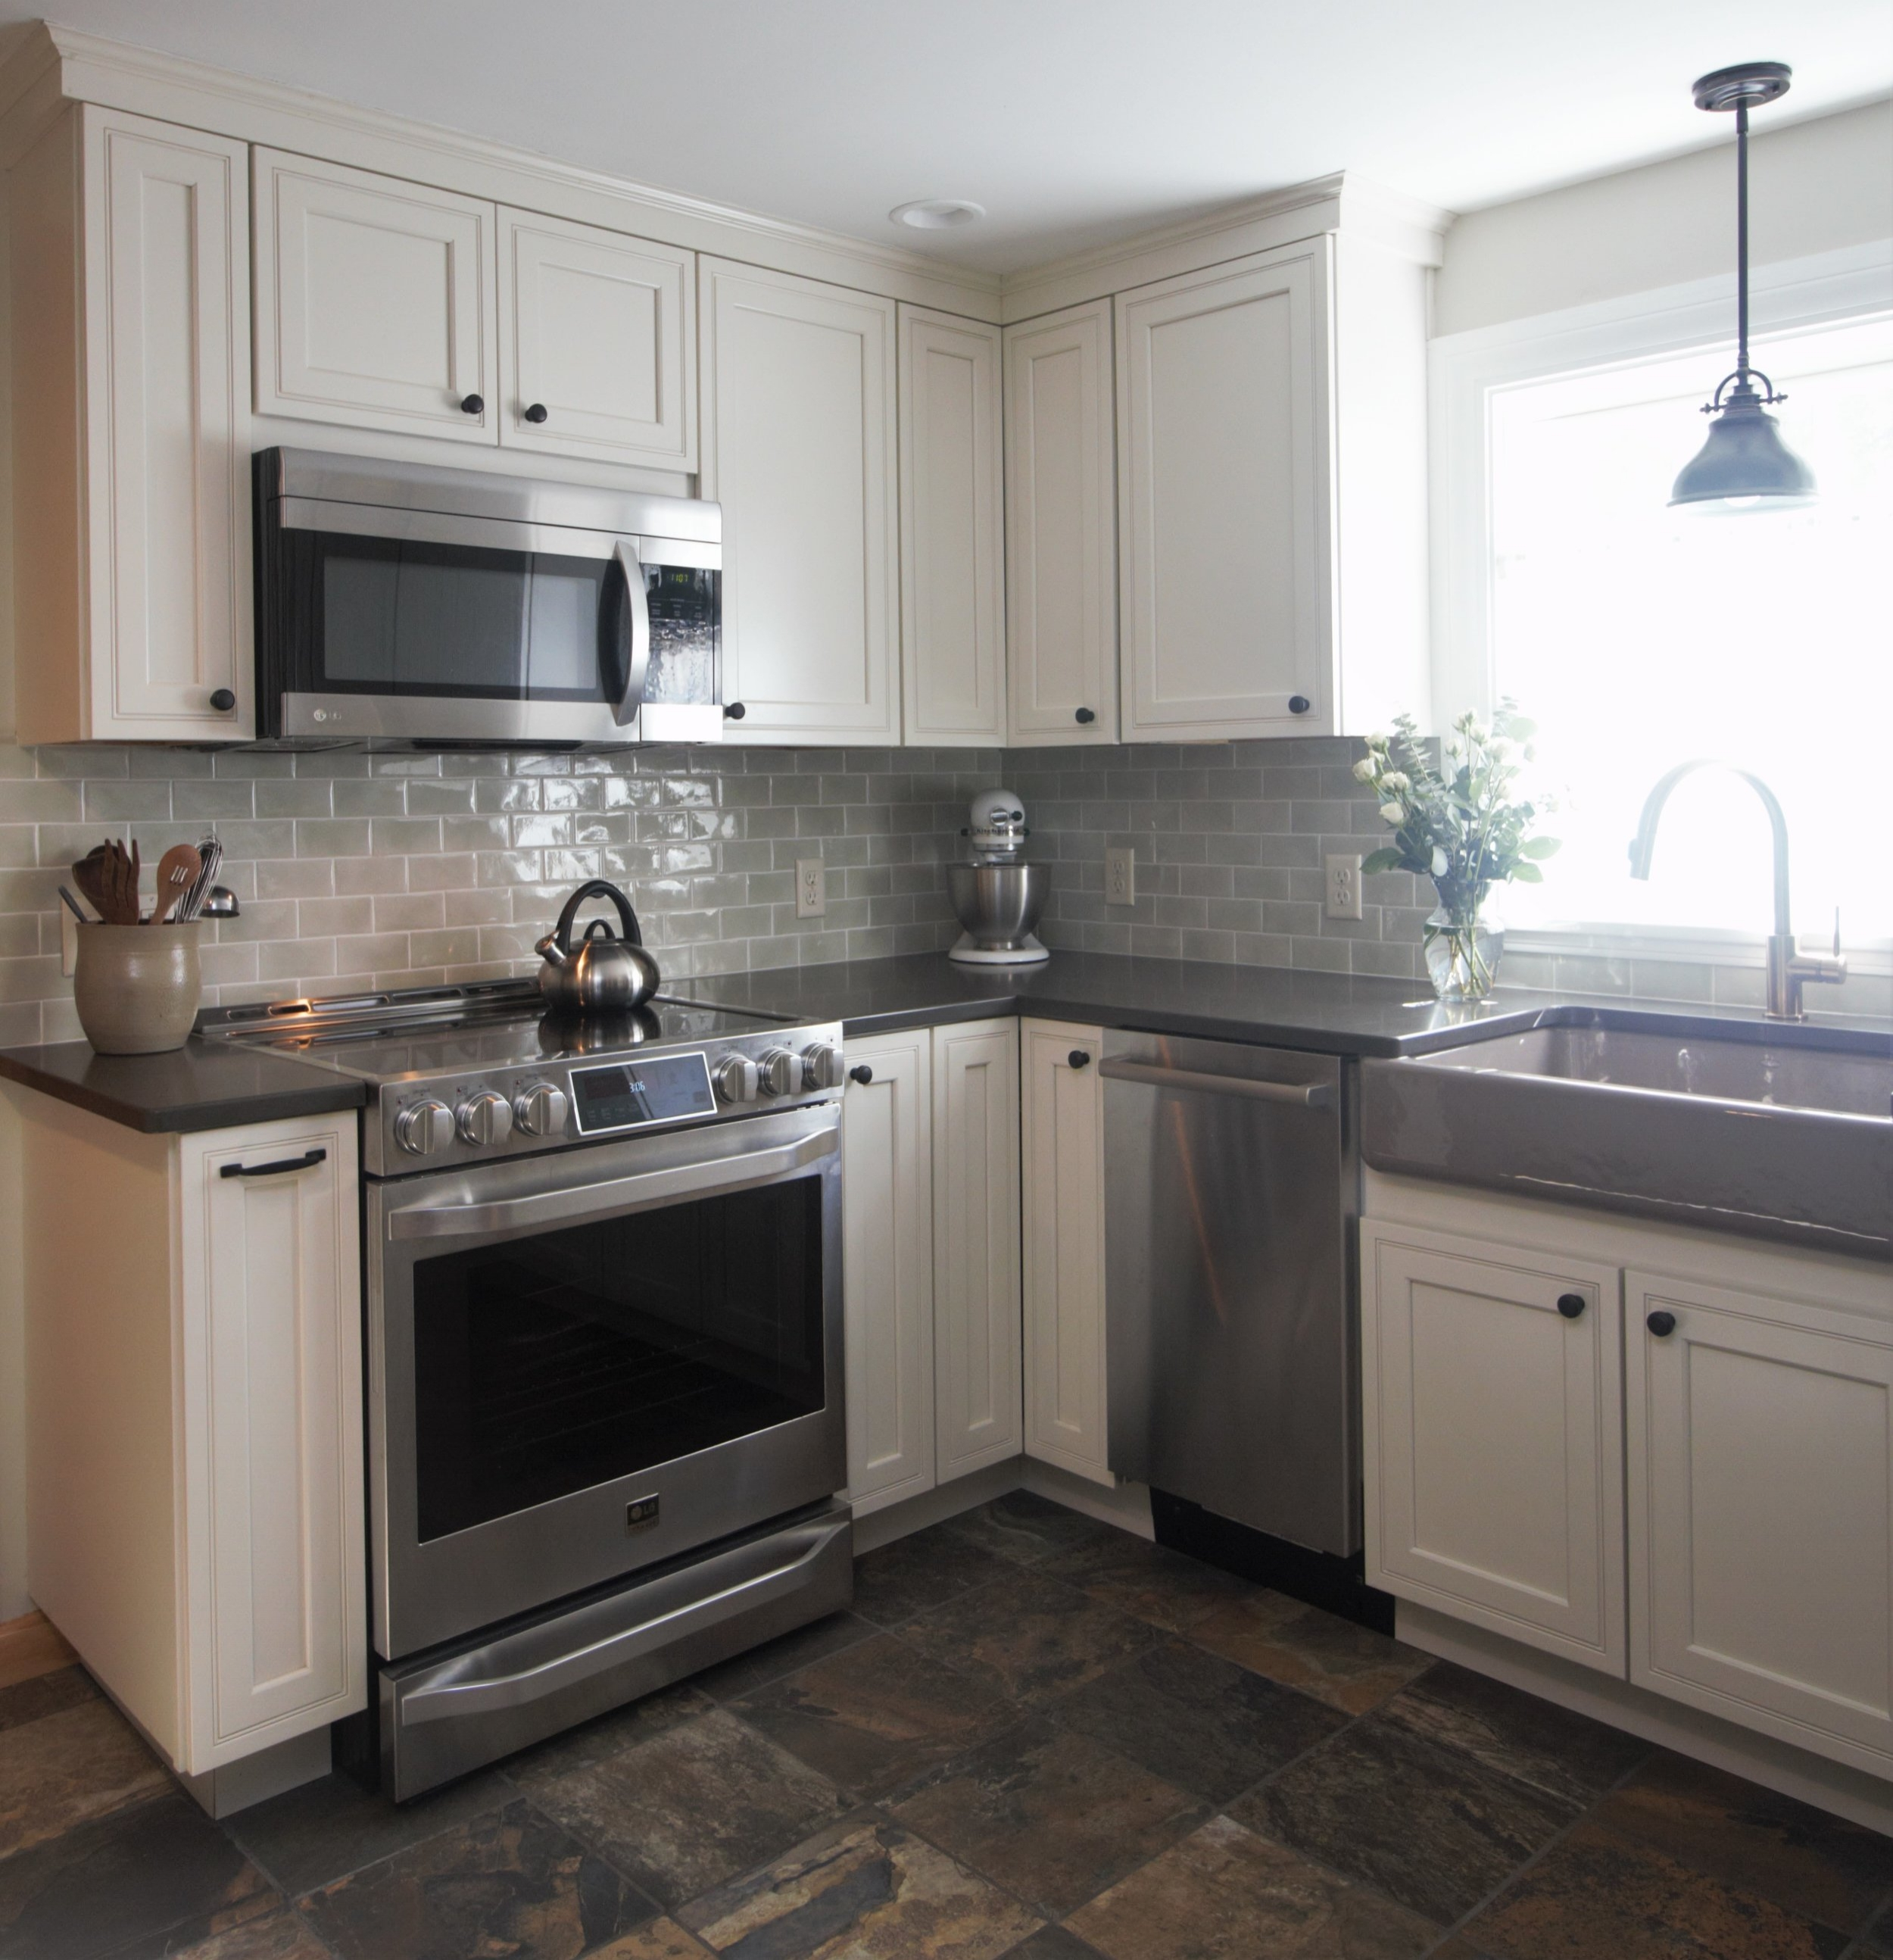 Designed by Solana James CKD / Kraftmaid Cabinets, Full Overlay Argonne Door Style, Maple Wood with Canvas Painted Finish / Caesarstone Pietra Grey Quartz Counter Tops